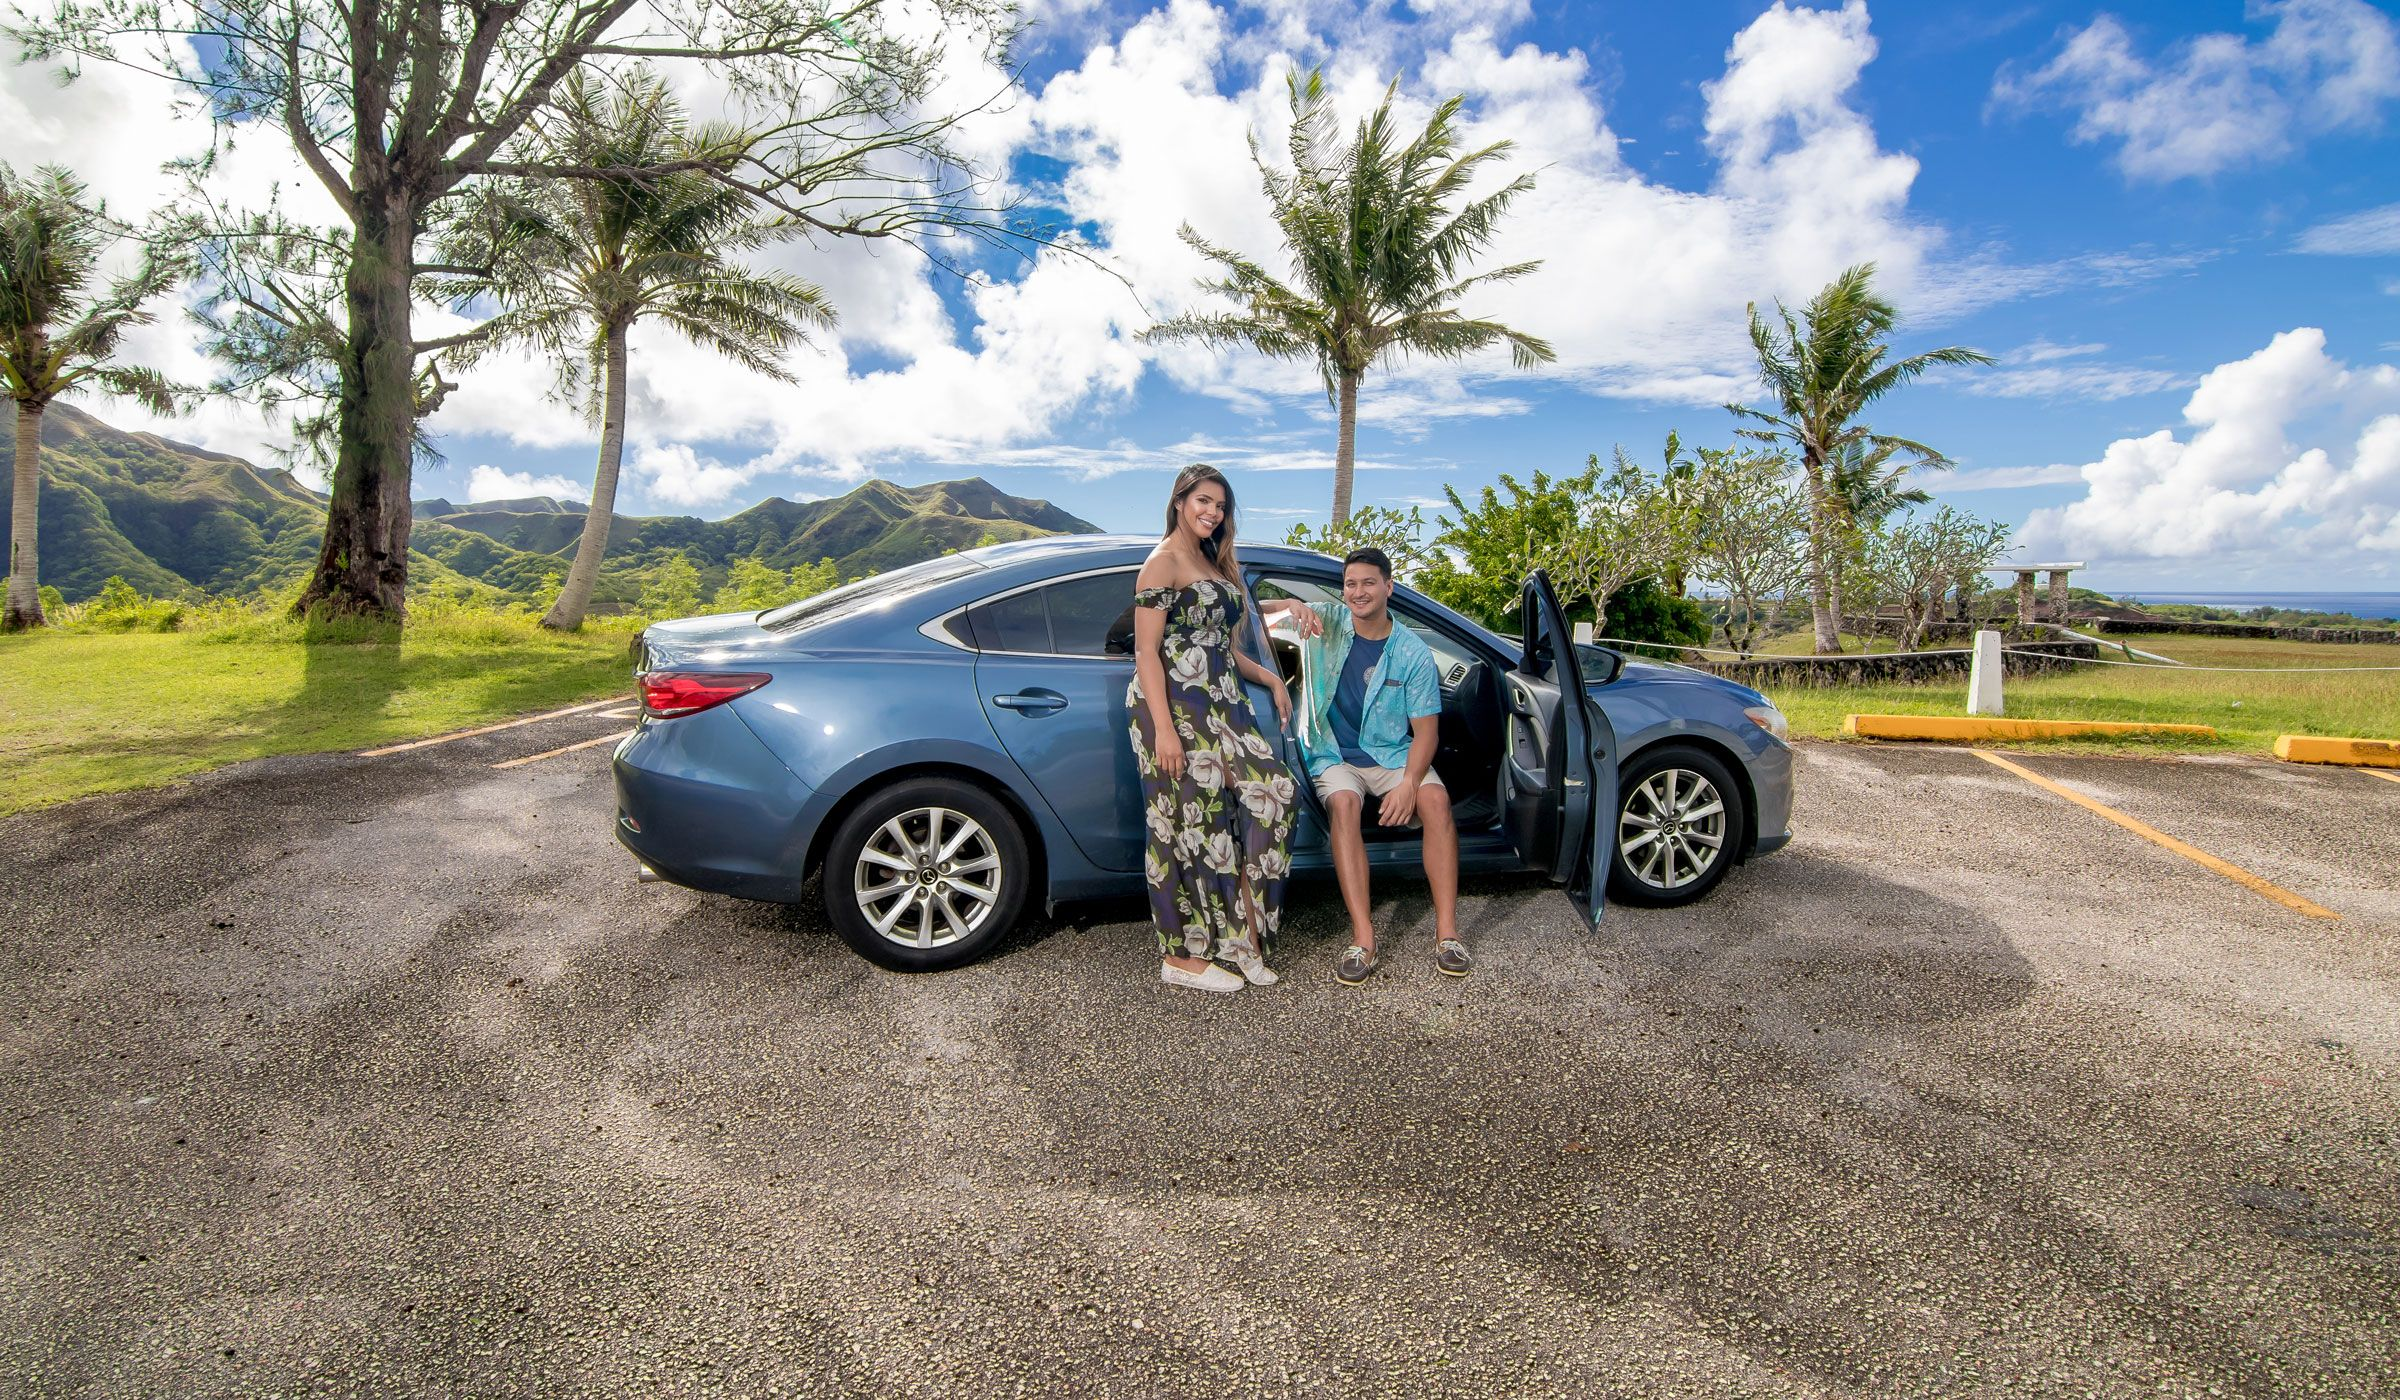 134 Reference Of Auto Insurance Quotes Guam Auto Insurance Quotes Car Insurance Guam